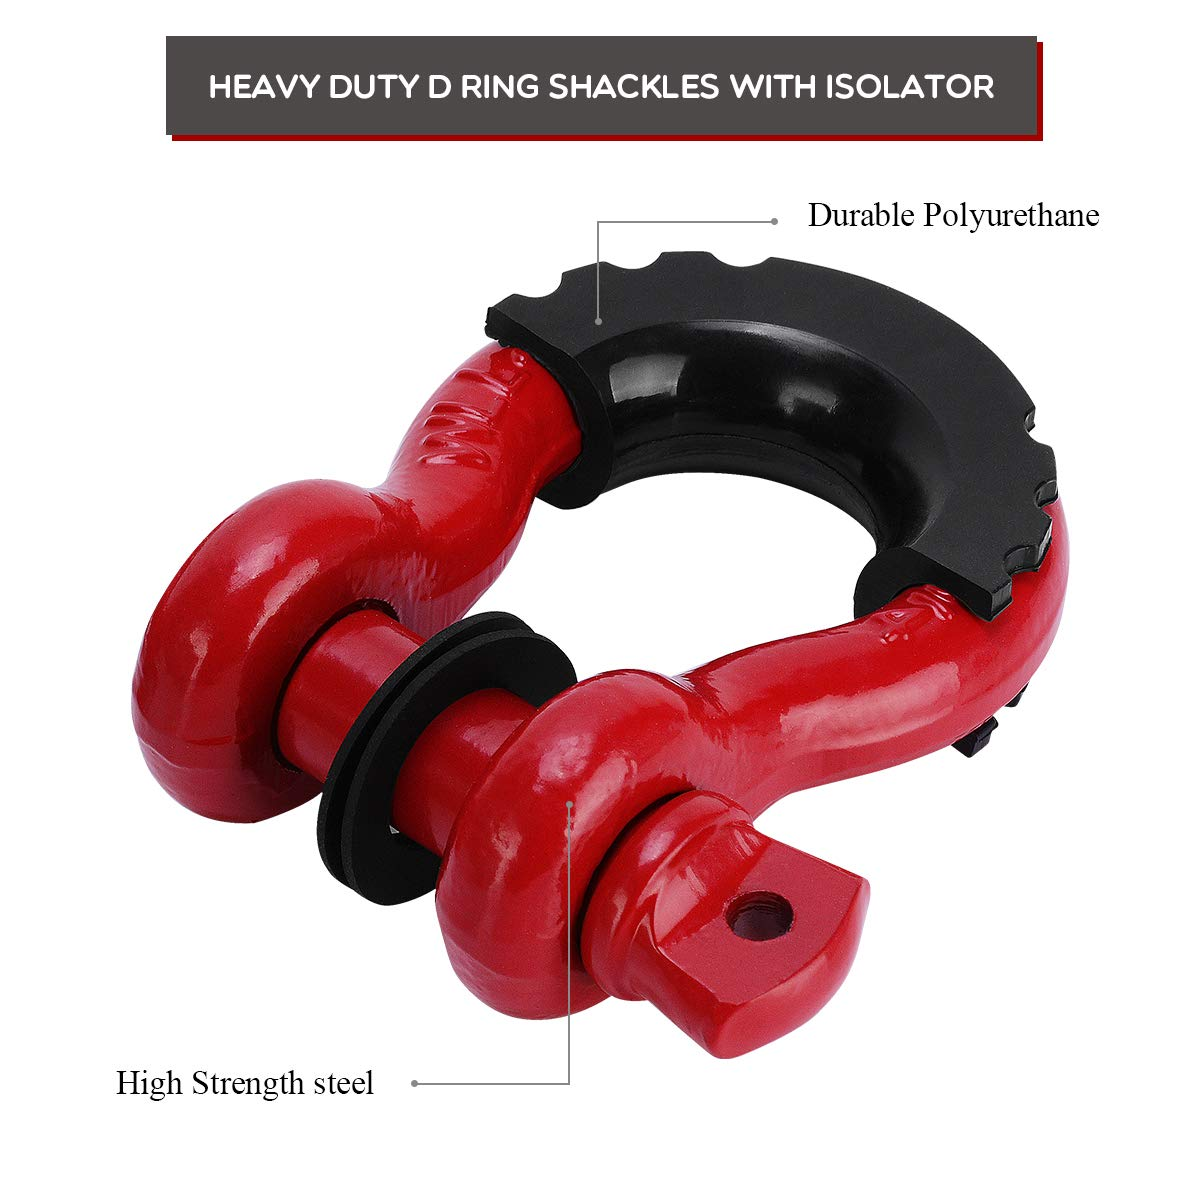 Heavy Duty Red Shackle Kit with Black Isolator Washer for Vehicle Recovery,Towing,Stump Removal Maxiii Shackles 3//4 Inch 2 Pack D Ring Shackle Rugged Off Road Shackles 4.75 Ton 9,500lbs